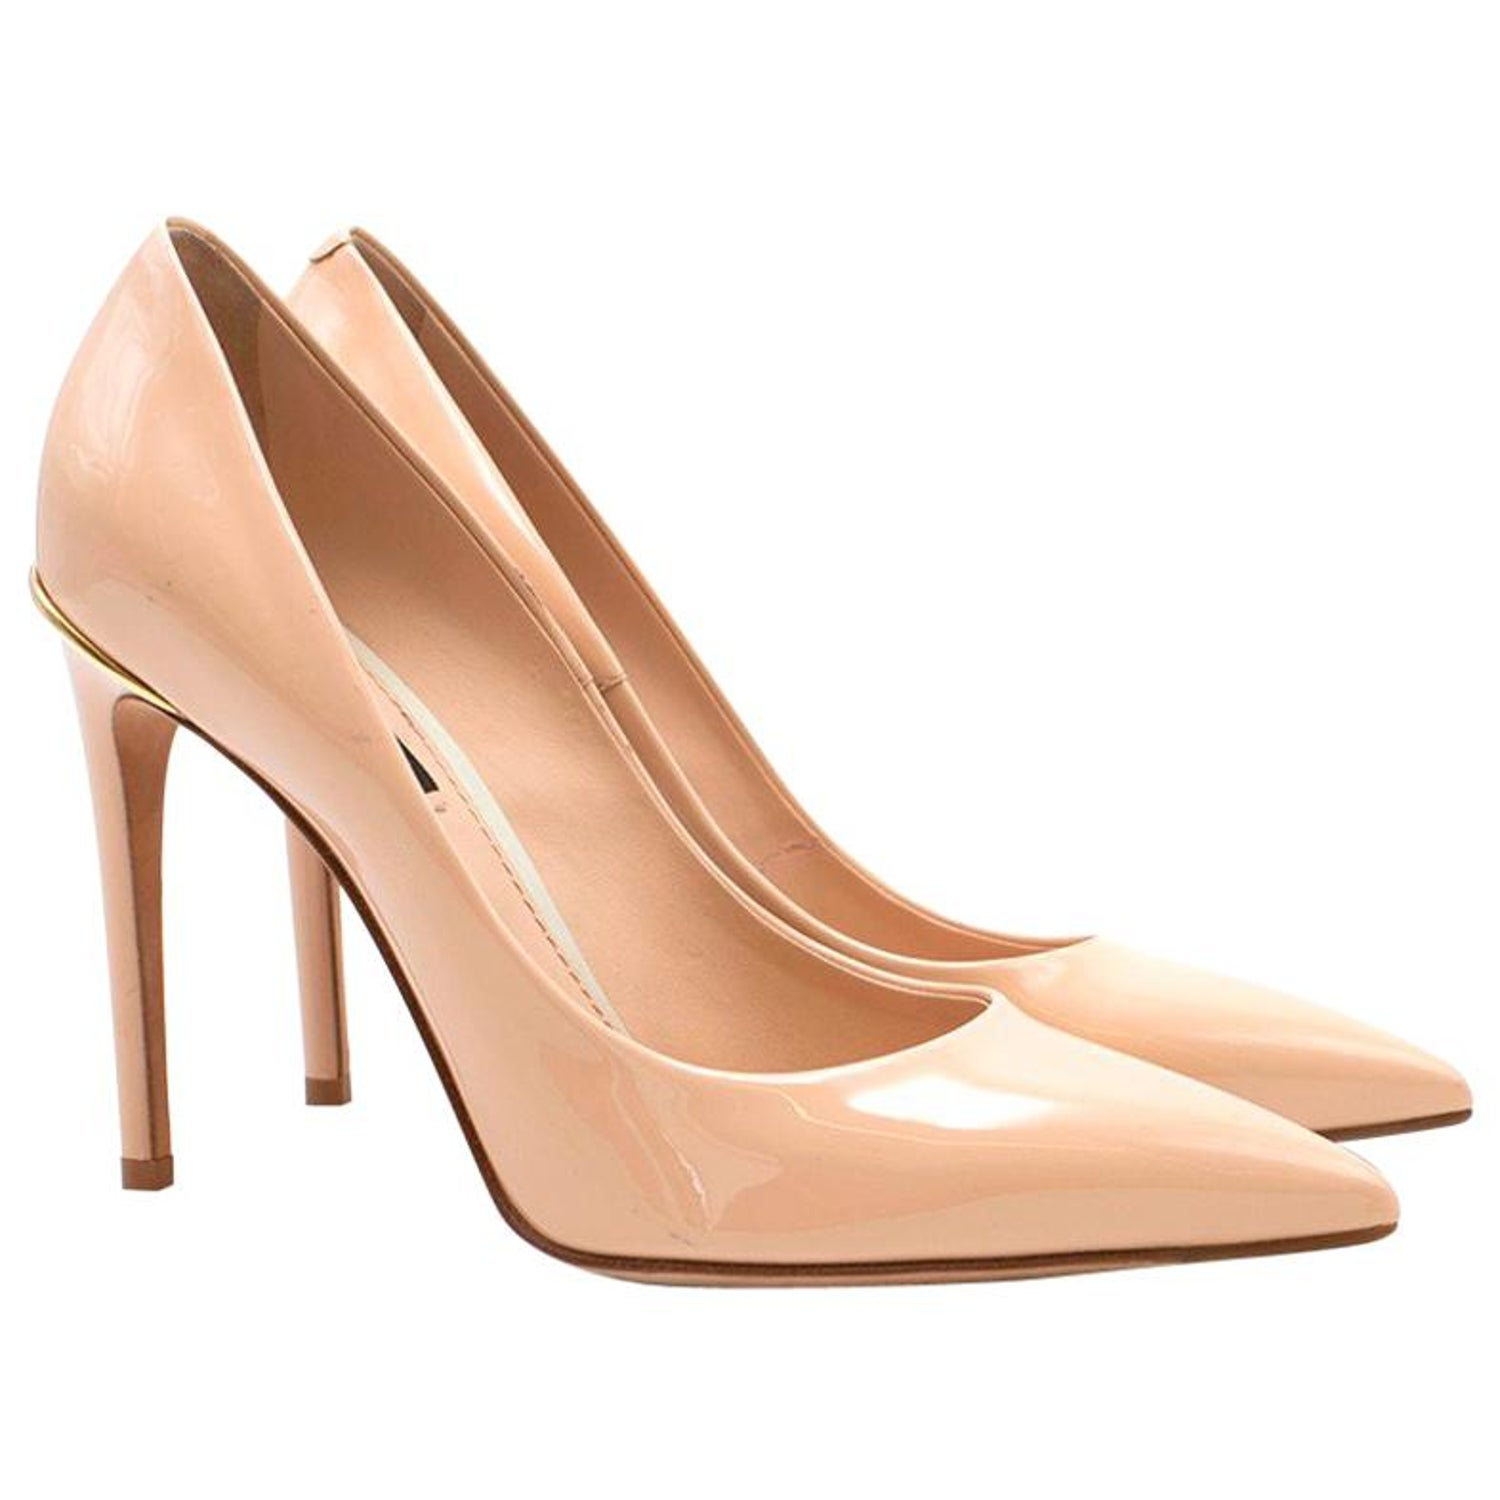 c8cb29f1ff8df Louis Vuitton Nude Patent Leather First Lady Pumps US 7.5 at 1stdibs